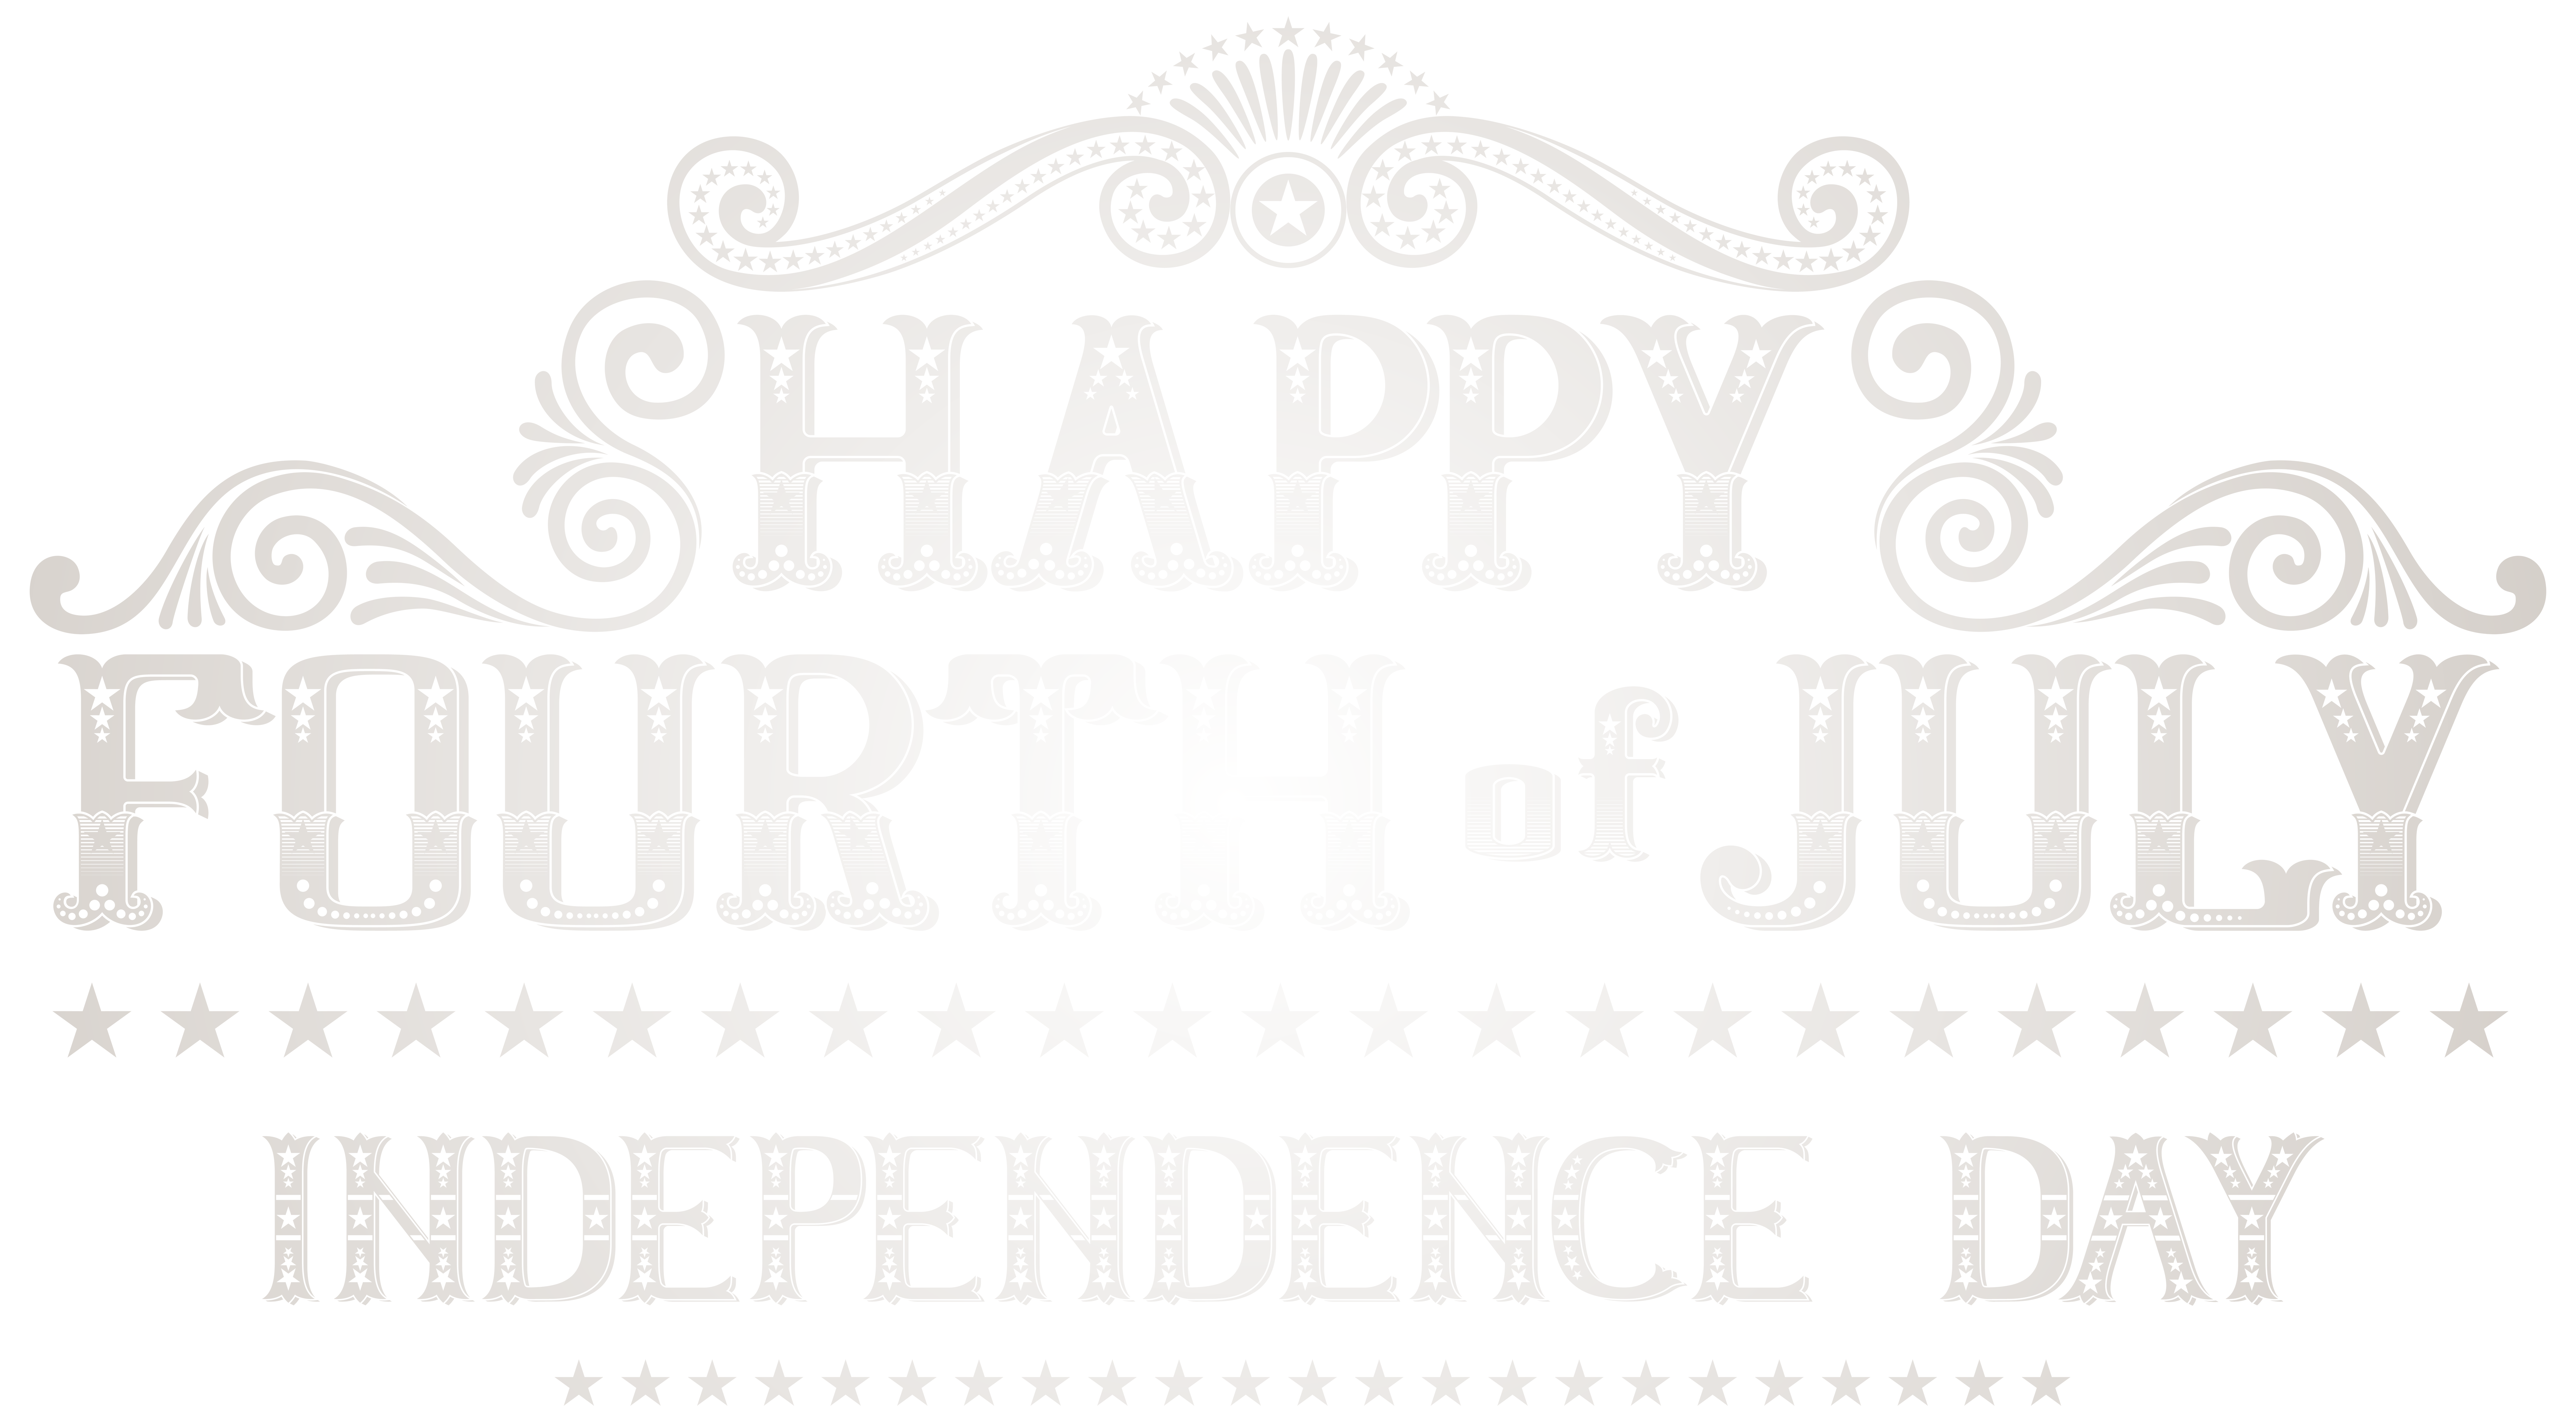 Happy 4th of july clipart black and white clipart images gallery for.